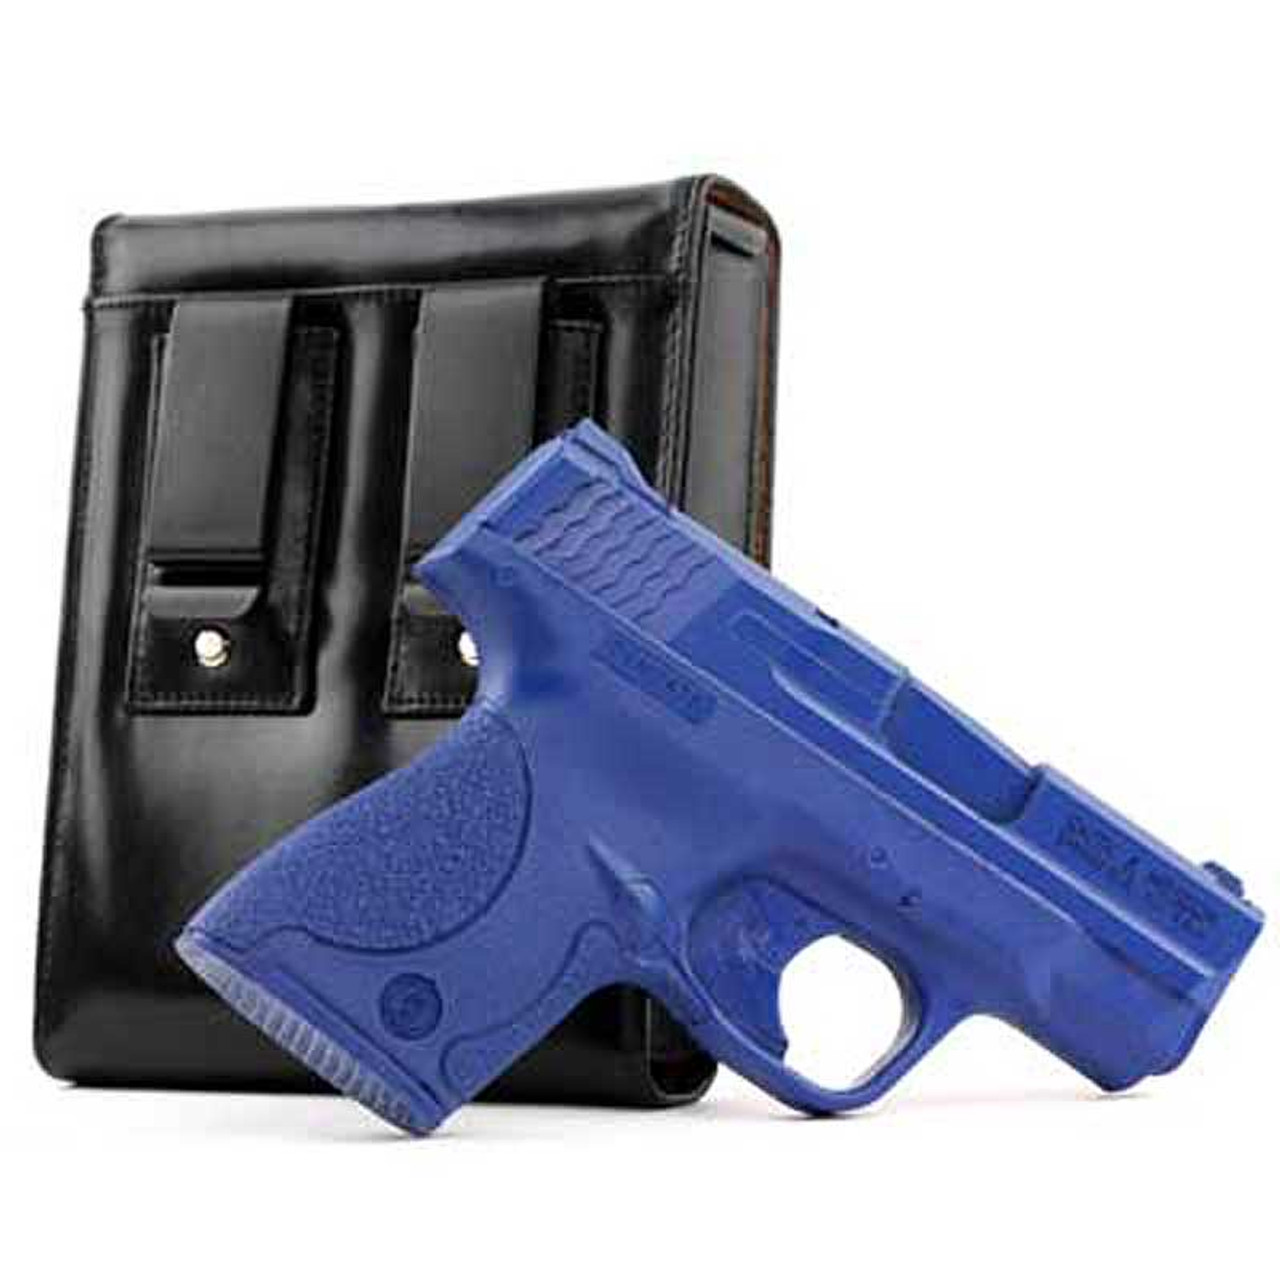 M&P Shield .40 Holster